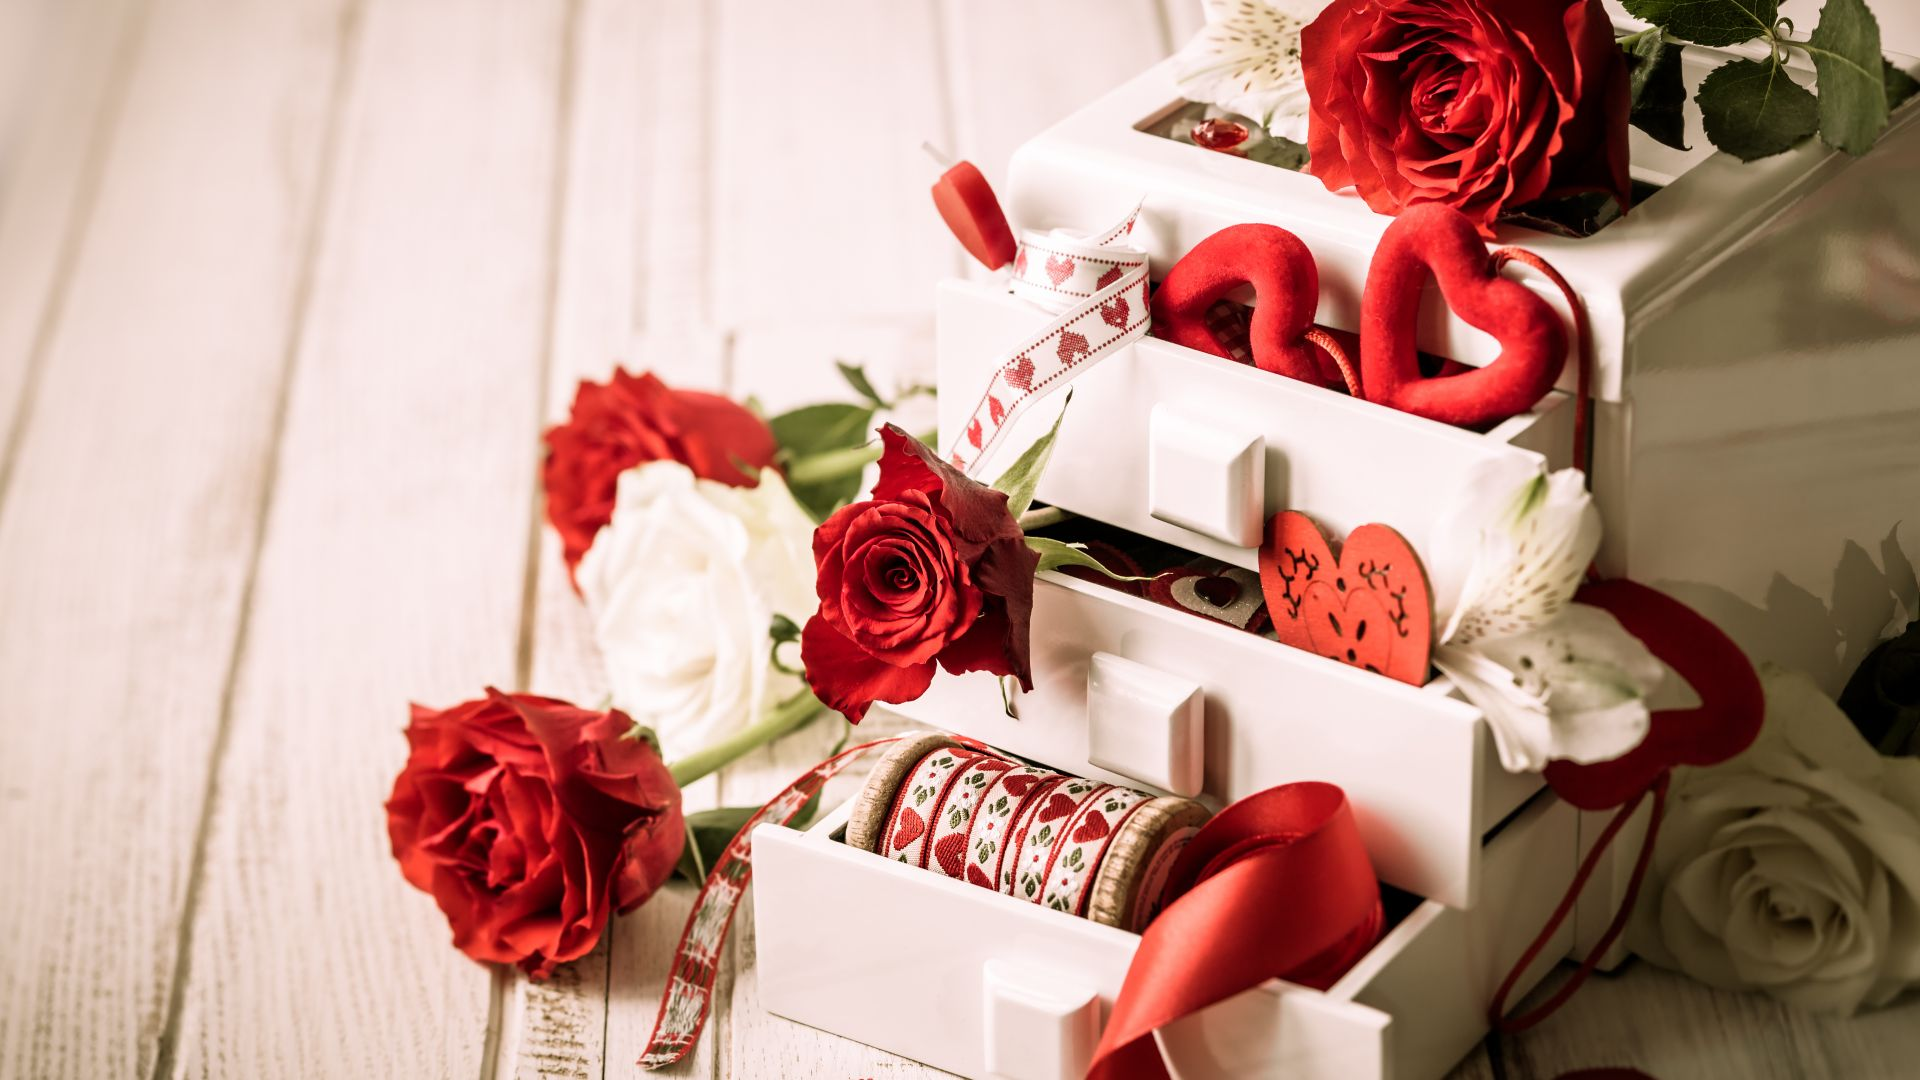 Valentine's Day, rose, heart, ribbon, romantic, love